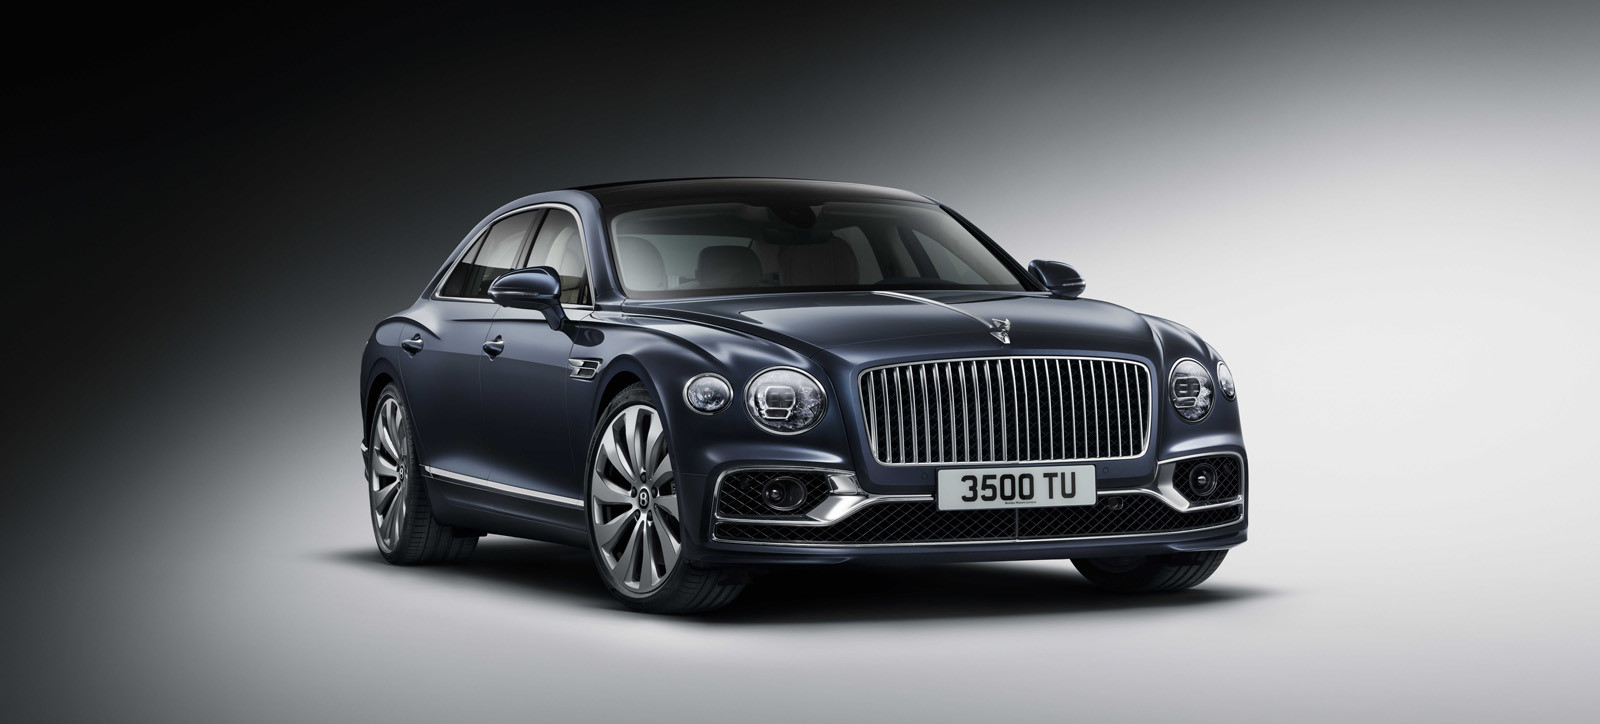 Foto de Bentley Flying Spur 2019 (1/16)